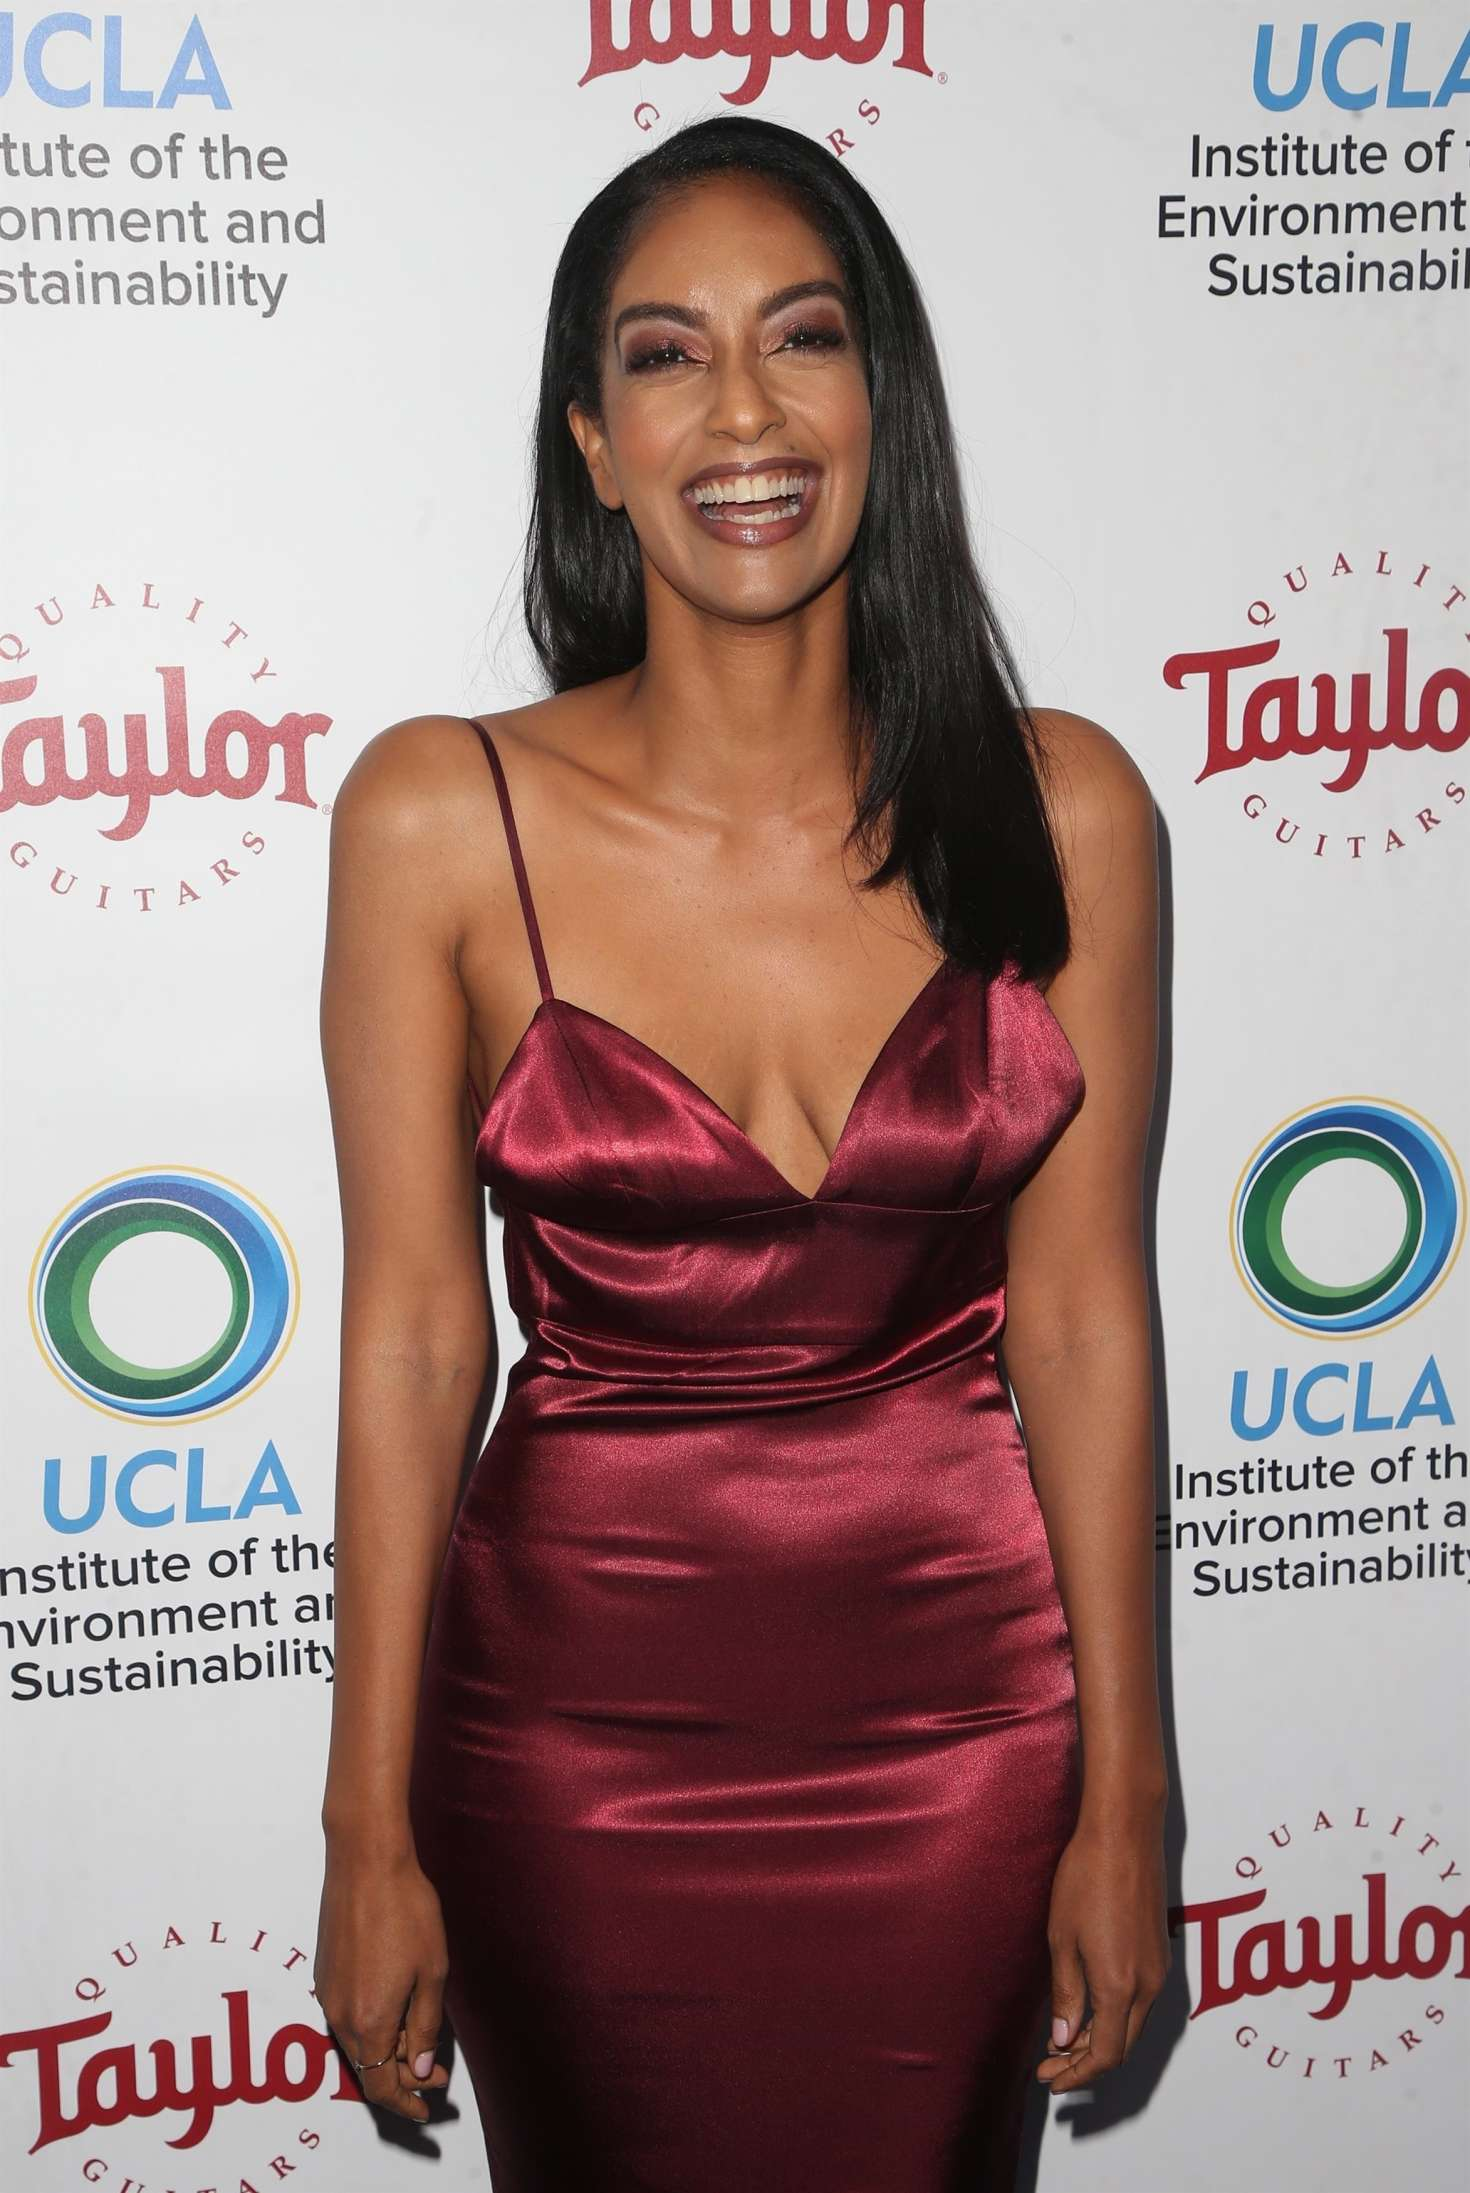 Azie Tesfai 2018 : Azie Tesfai: 2018 UCLAs Institute of the Environment and Sustainability Gala -03